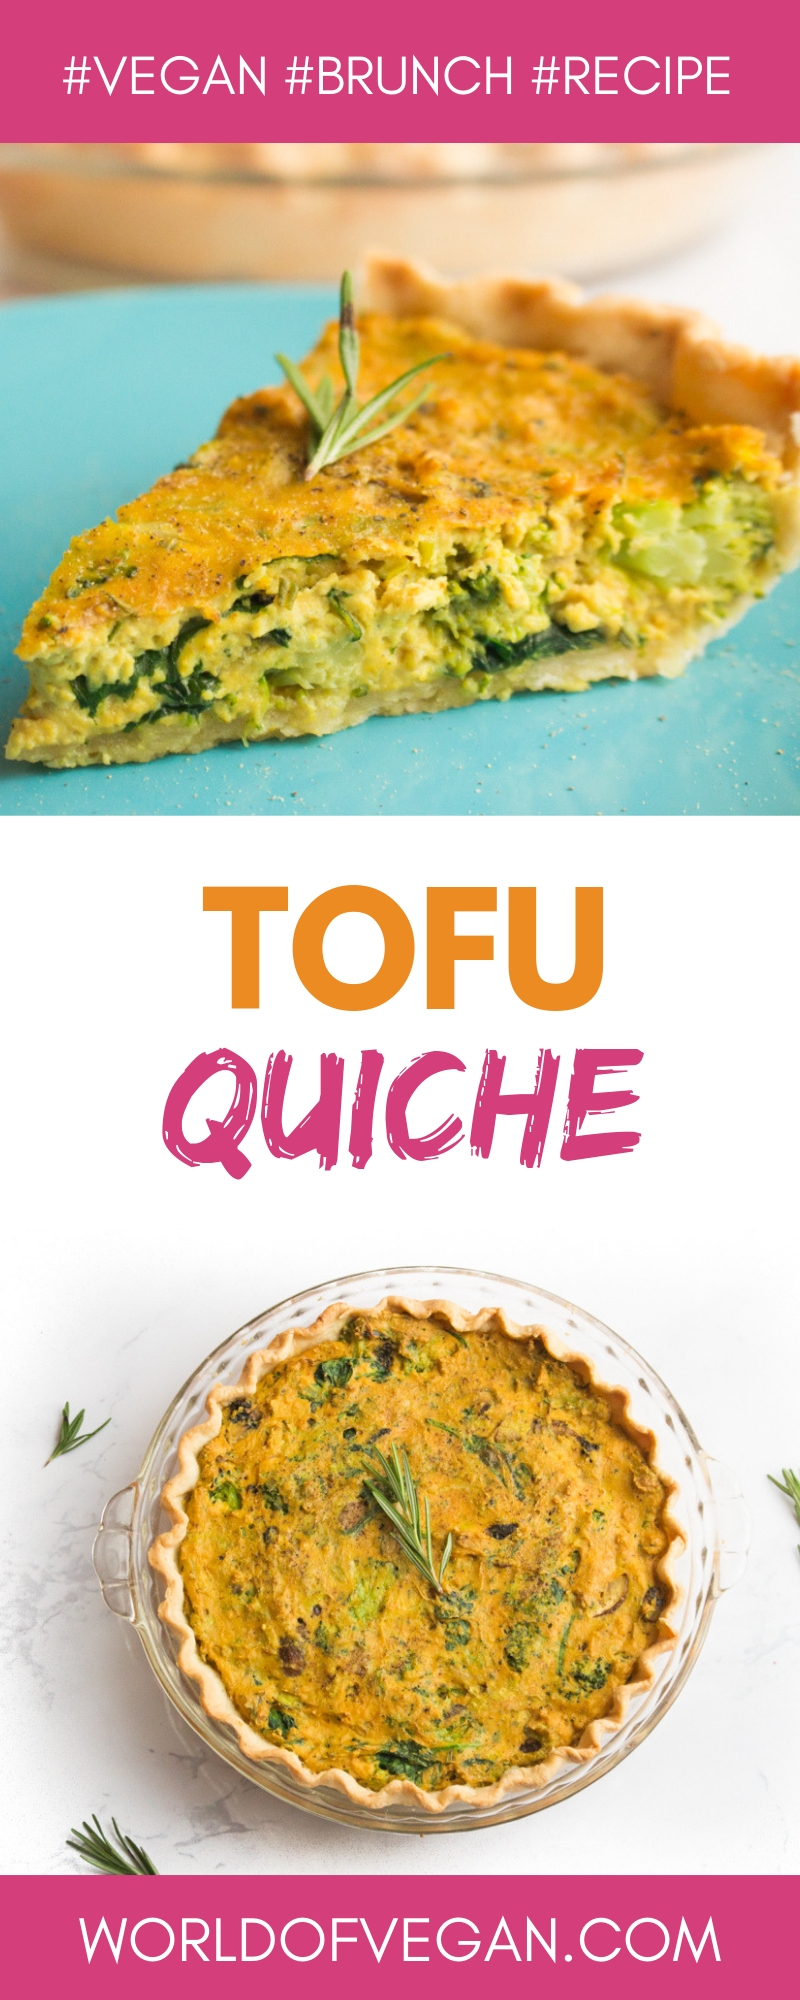 Tofu Quiche | Delicious Plant-Based Brunch Recipe | WorldOfVegan.com | #vegan #brunch #tofu #recipe #breakfast #quiche